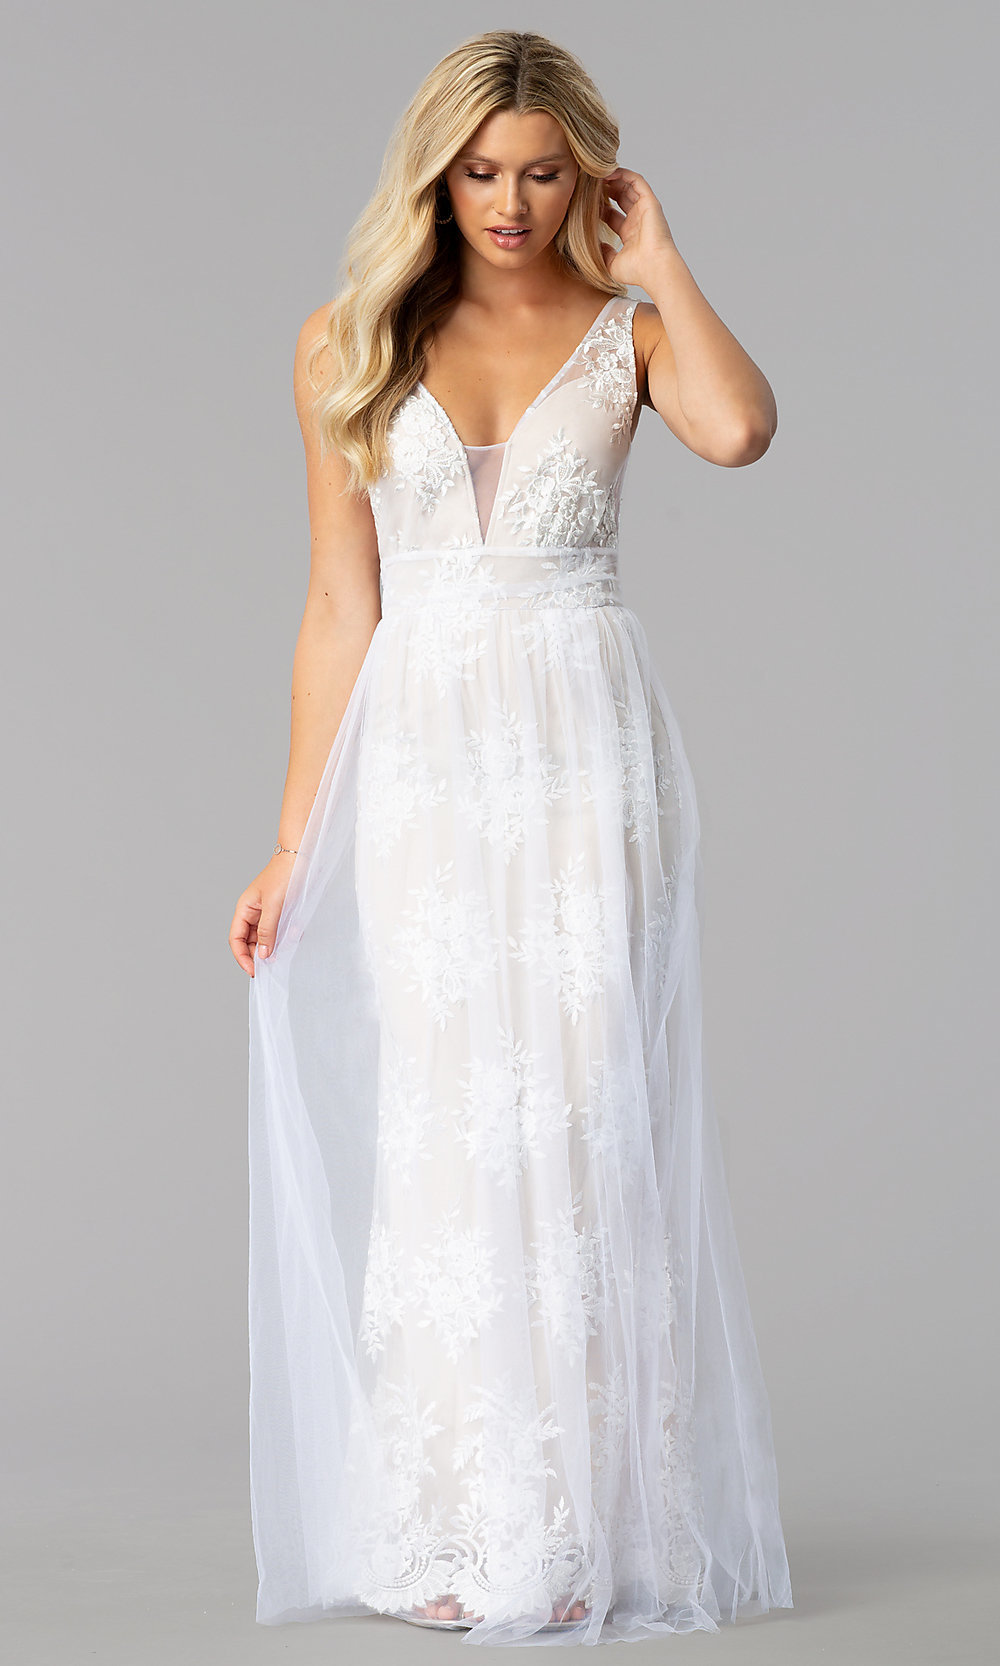 Embroidered-Mesh Long Prom Dress with V-Neck -PromGirl